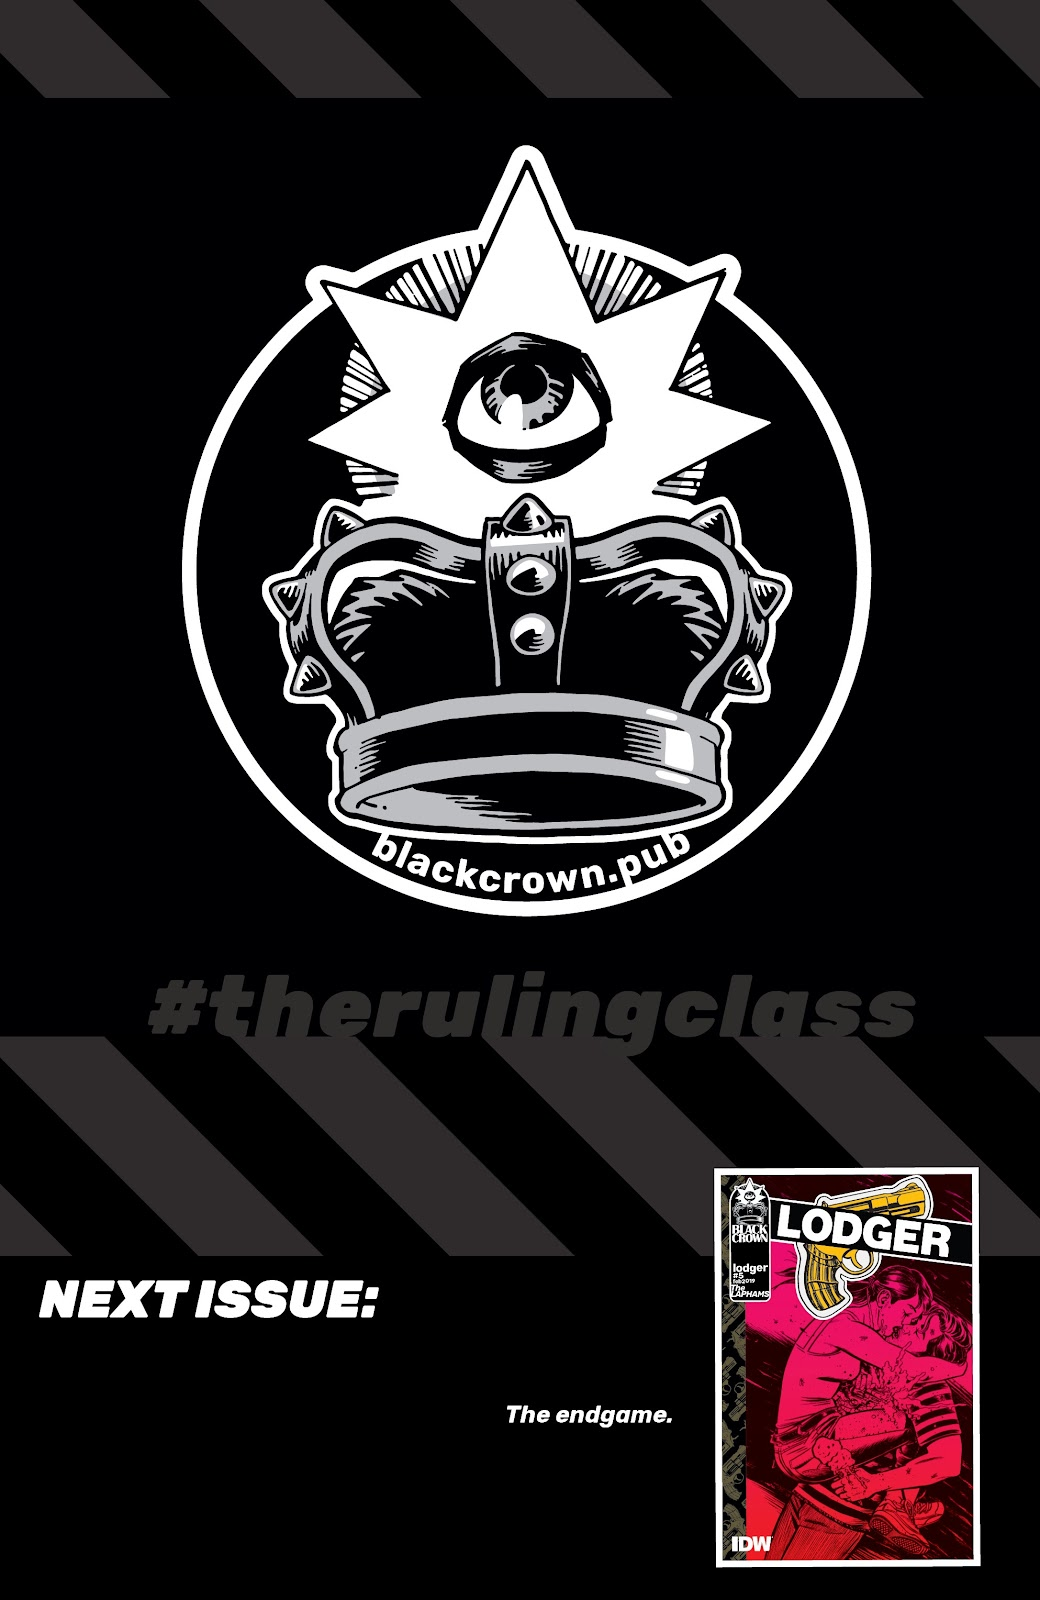 Read online Lodger comic -  Issue #4 - 28